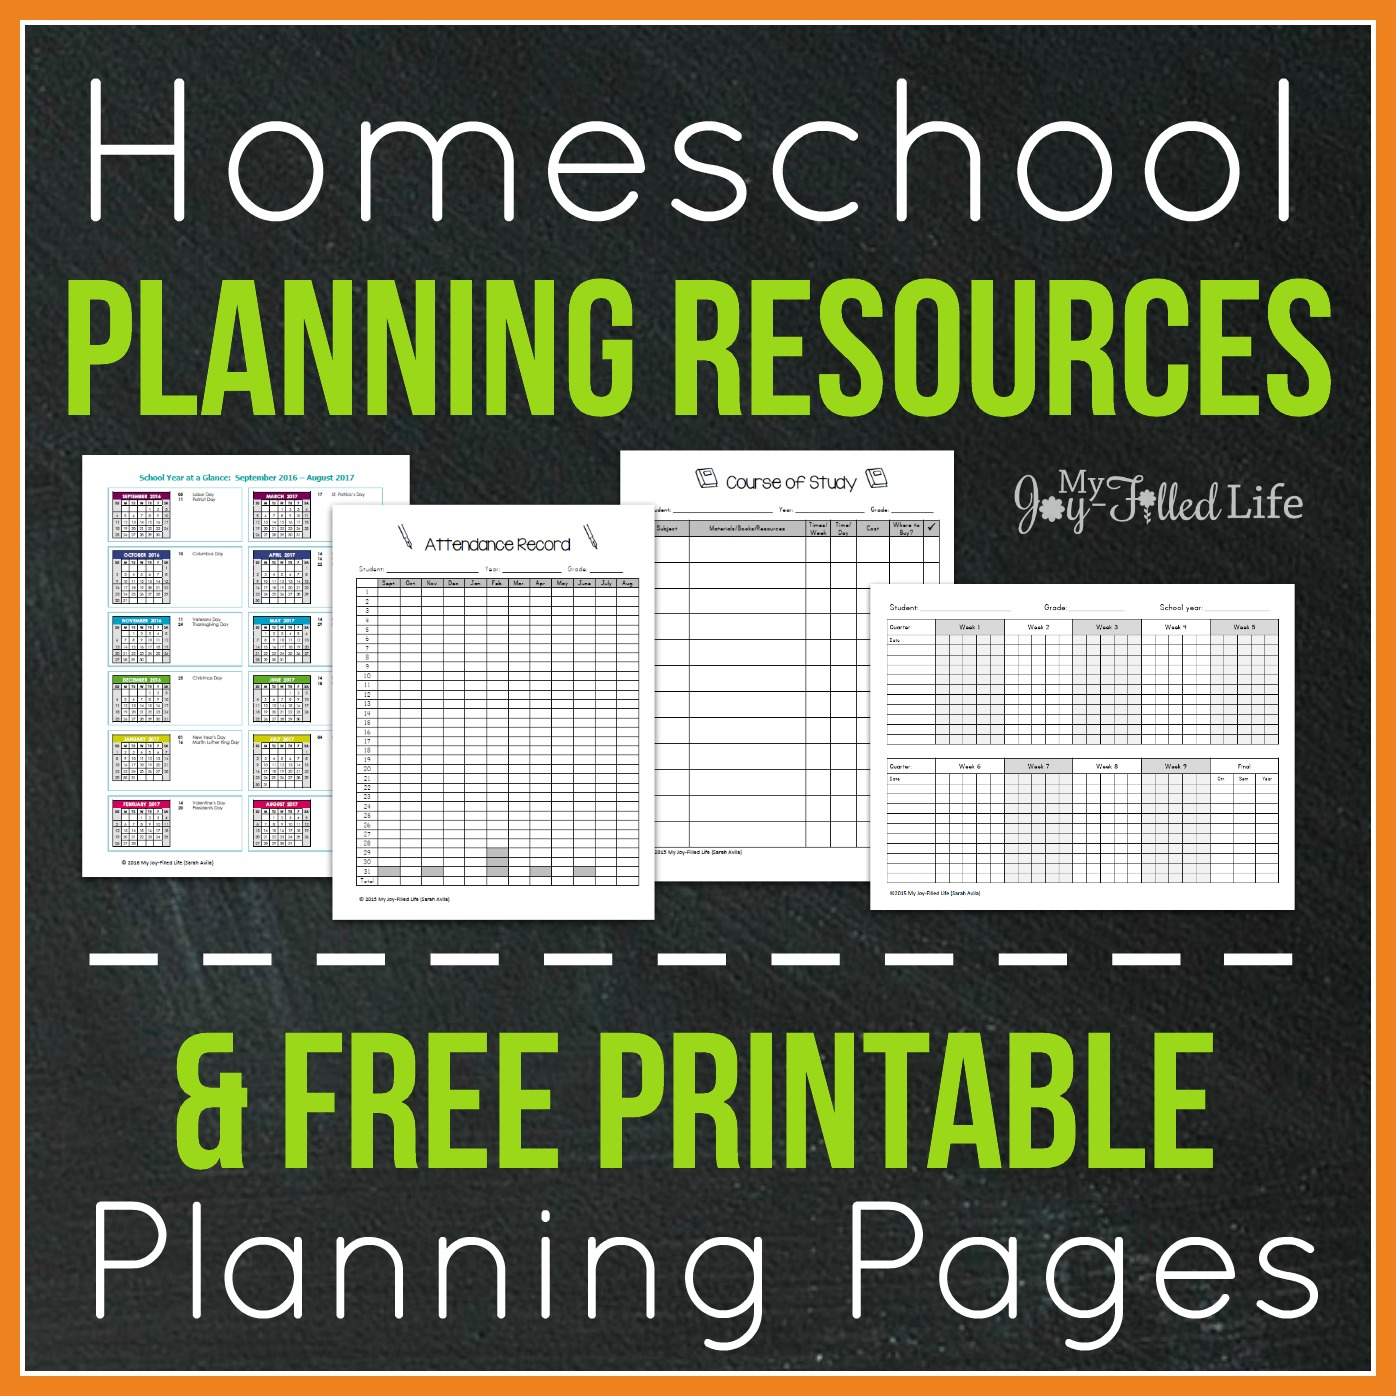 Top Homeschool Planning Resources Amp Free Printable